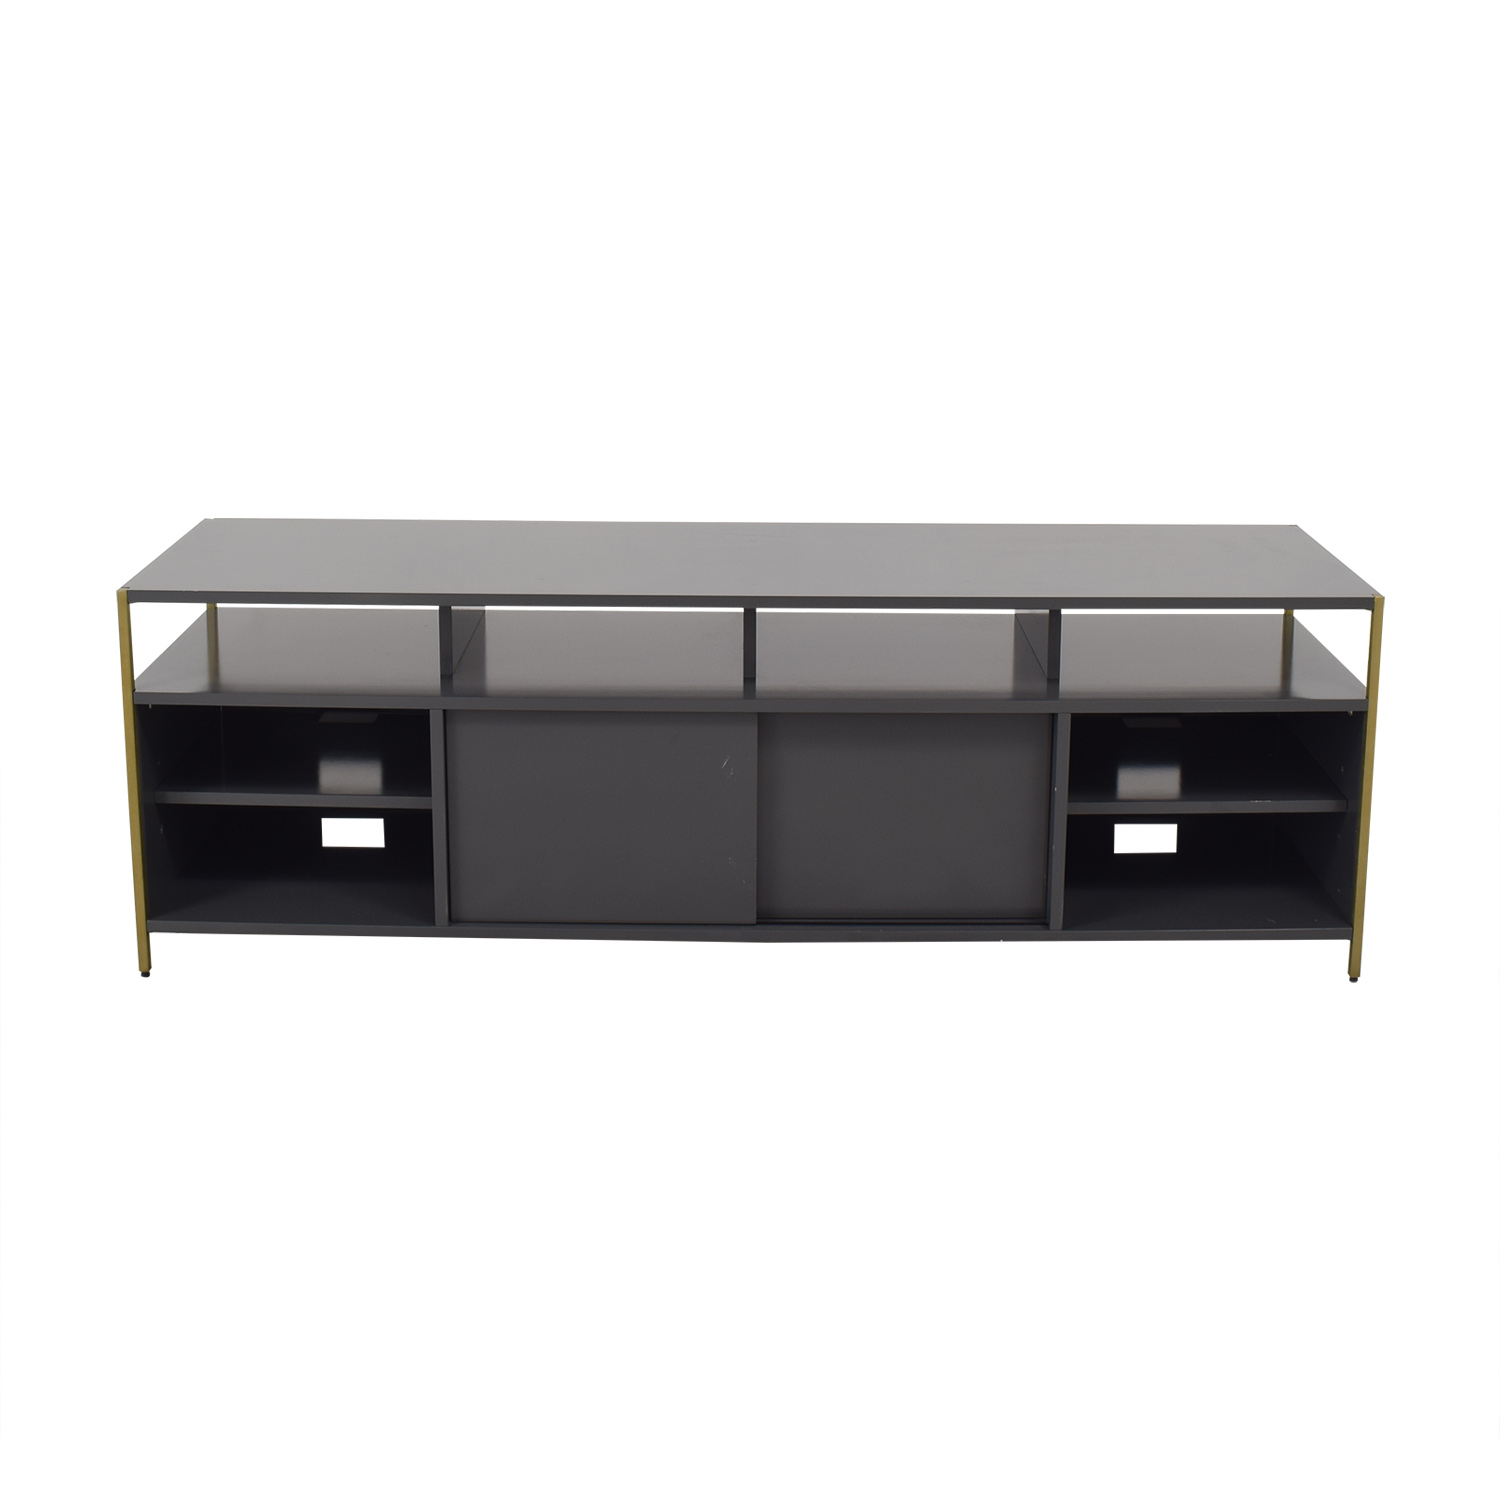 West Elm West Elm Zane Media Console nj